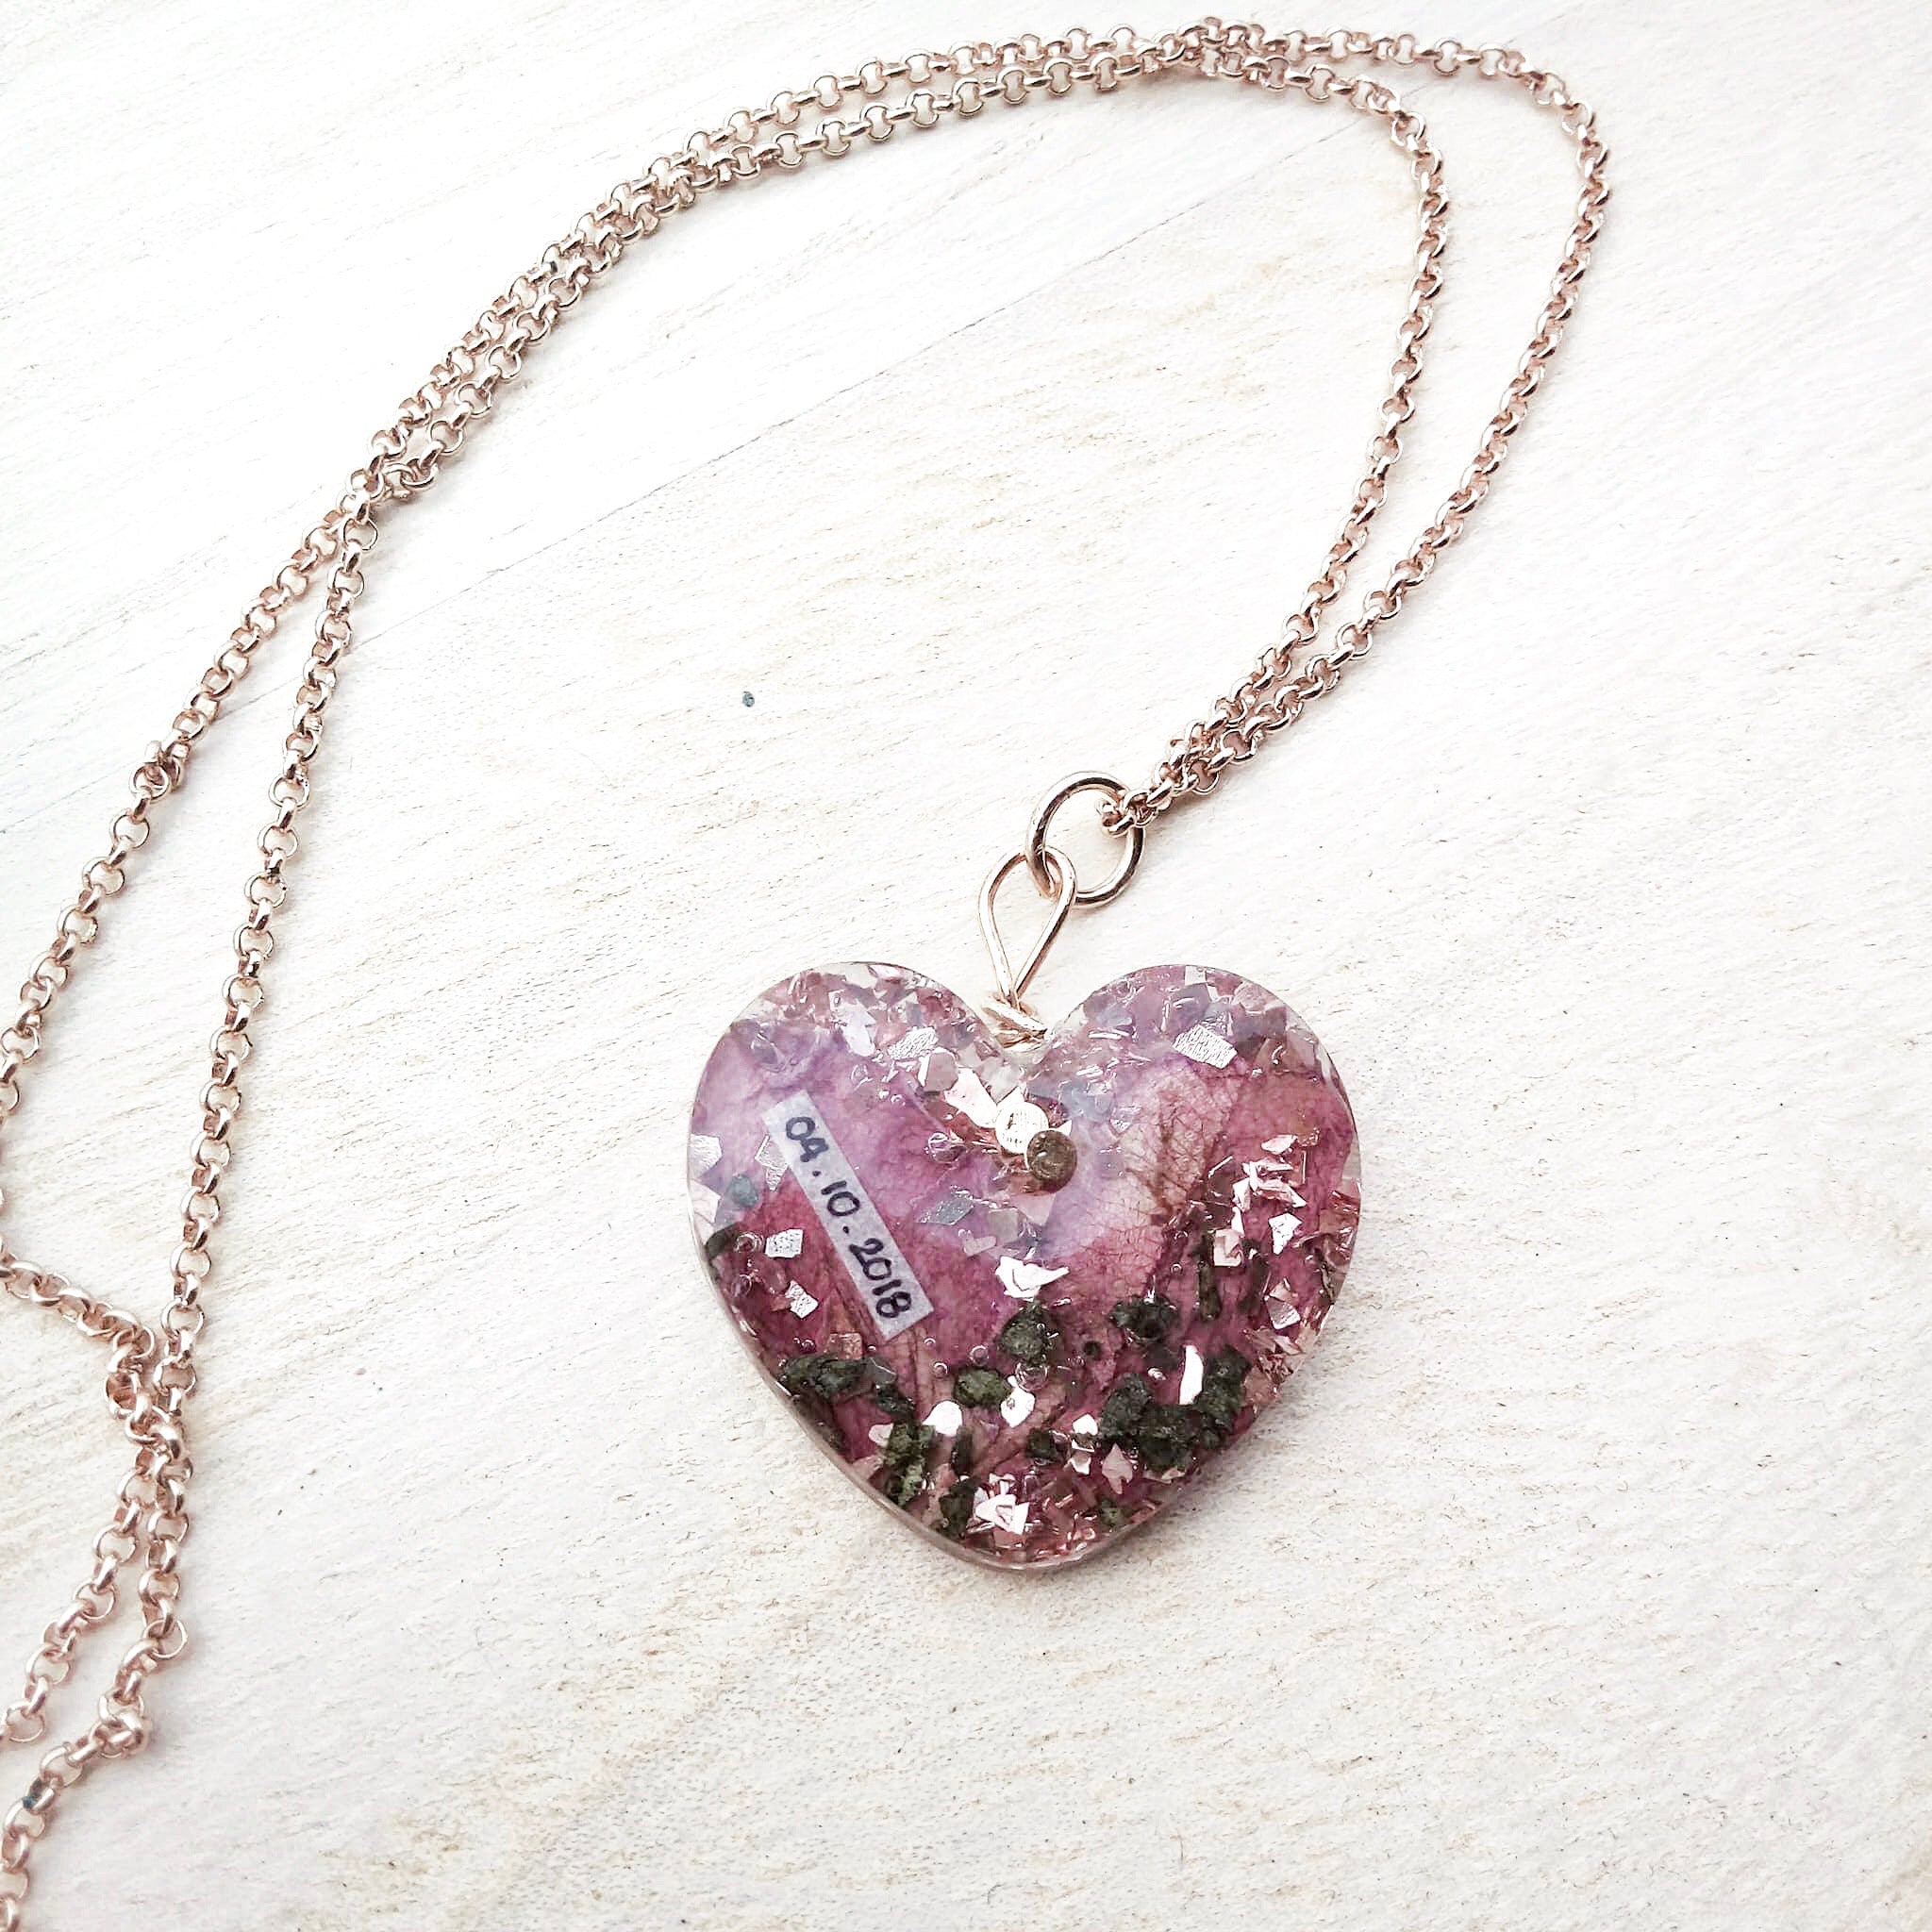 Flower Preservation in a Heart Necklace